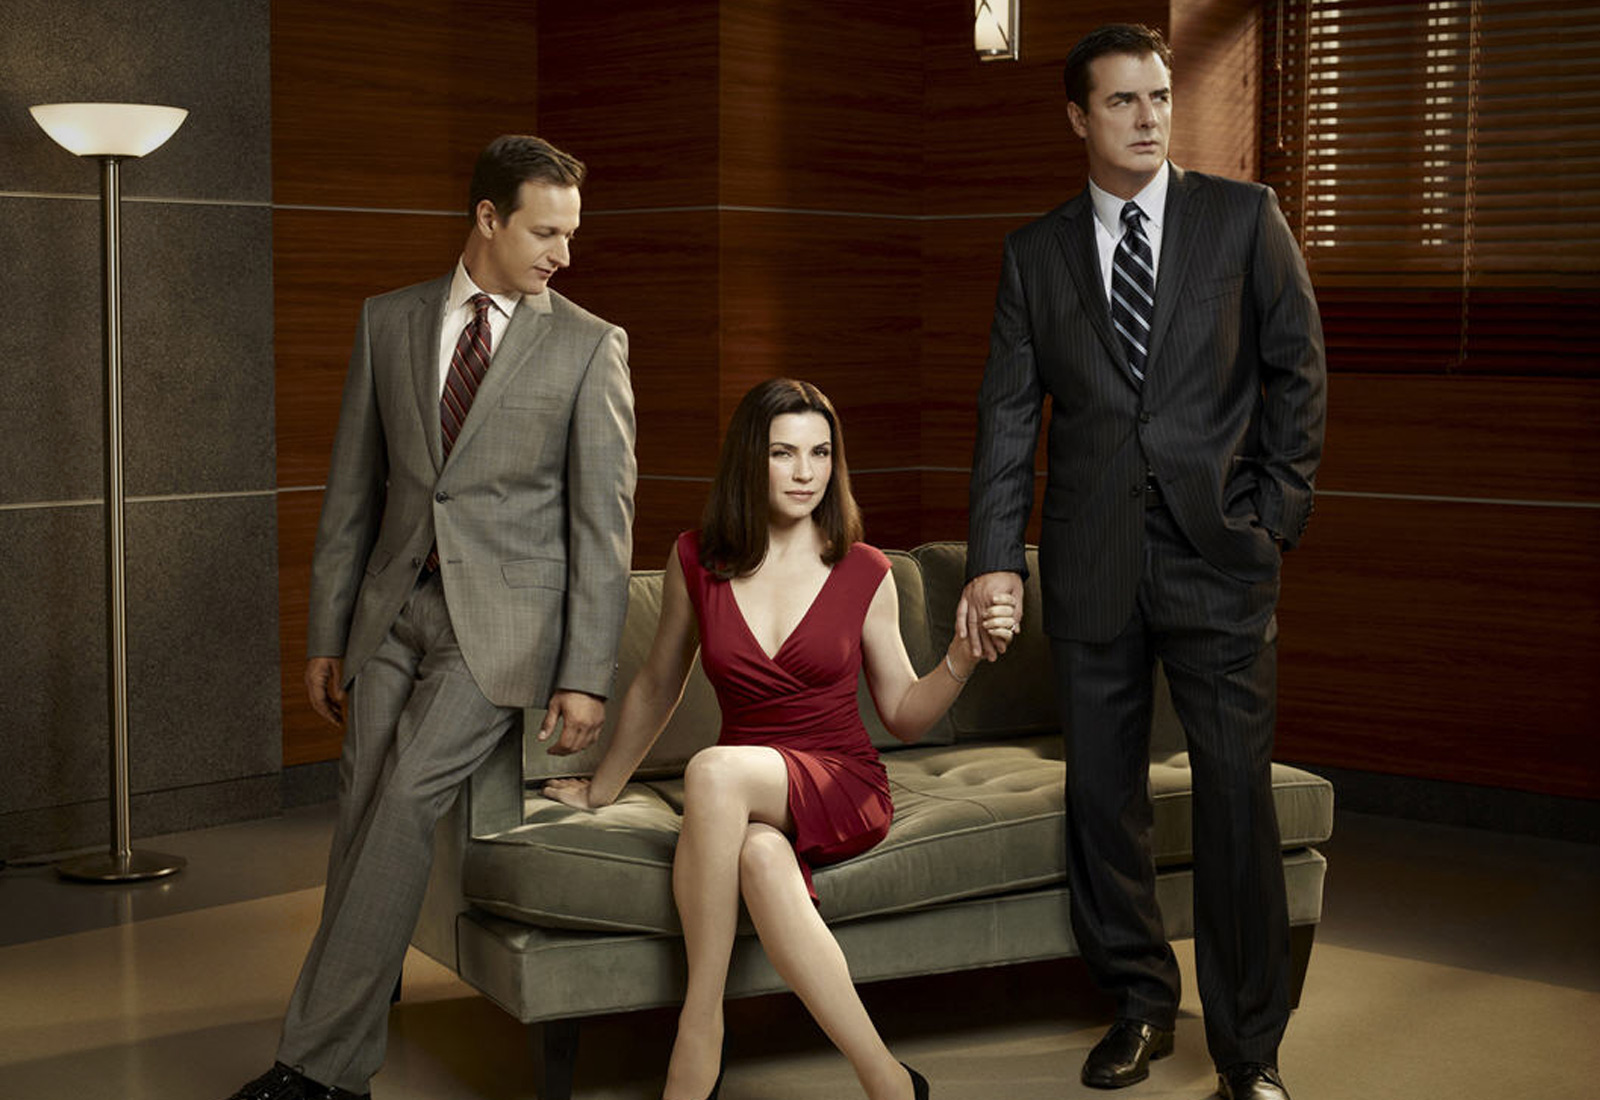 Watch The Good Wife Season 1 Prime Video